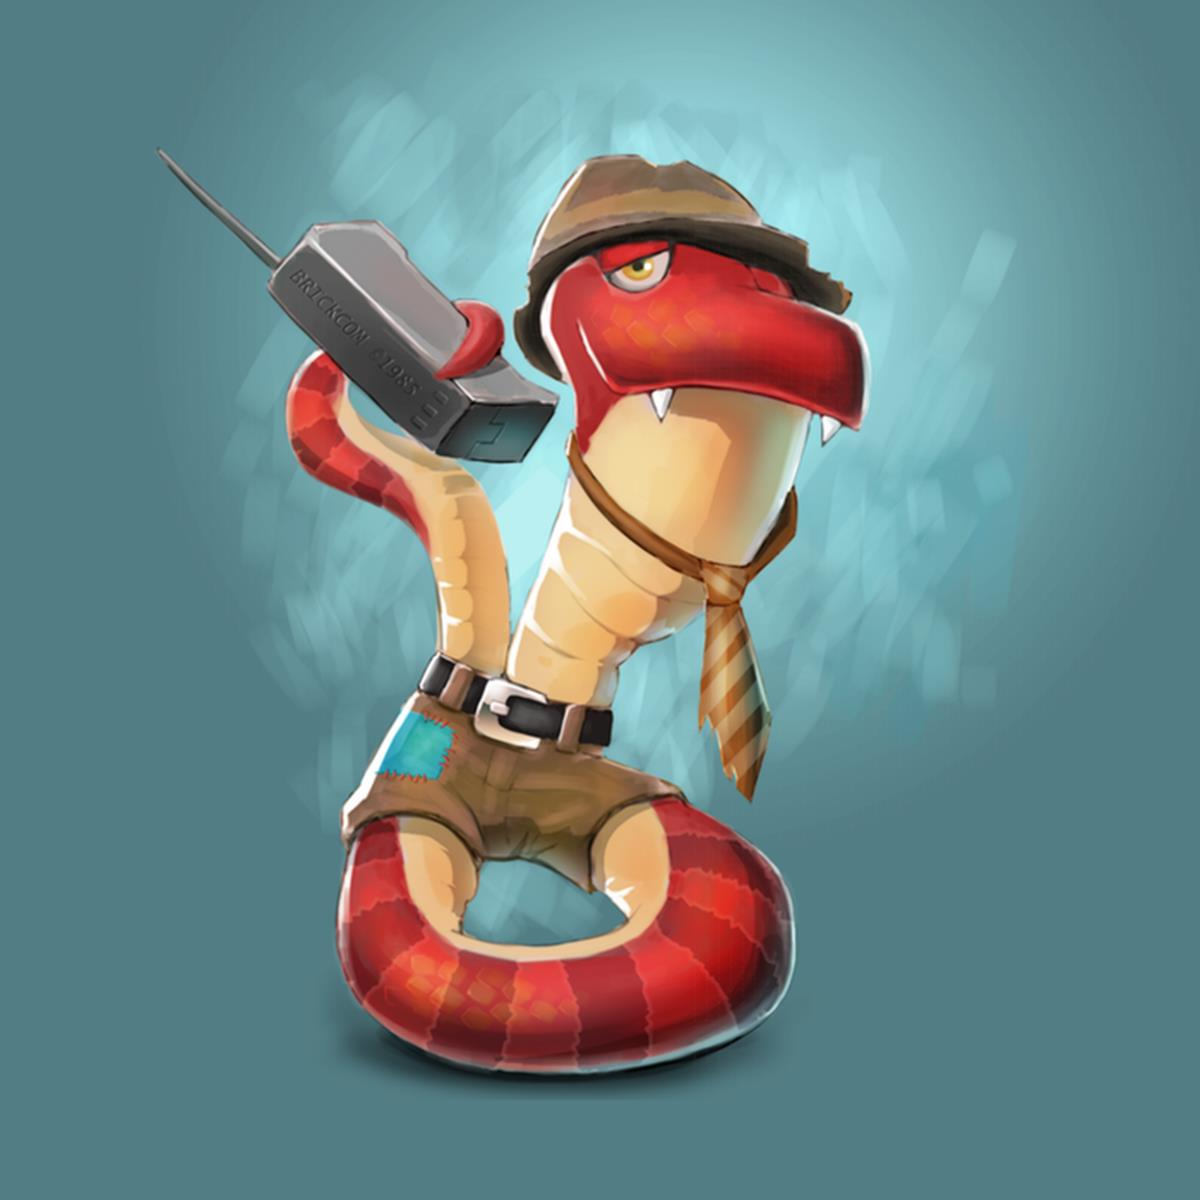 Banjo Kazooie Successor Gets New Character That Is A Snake